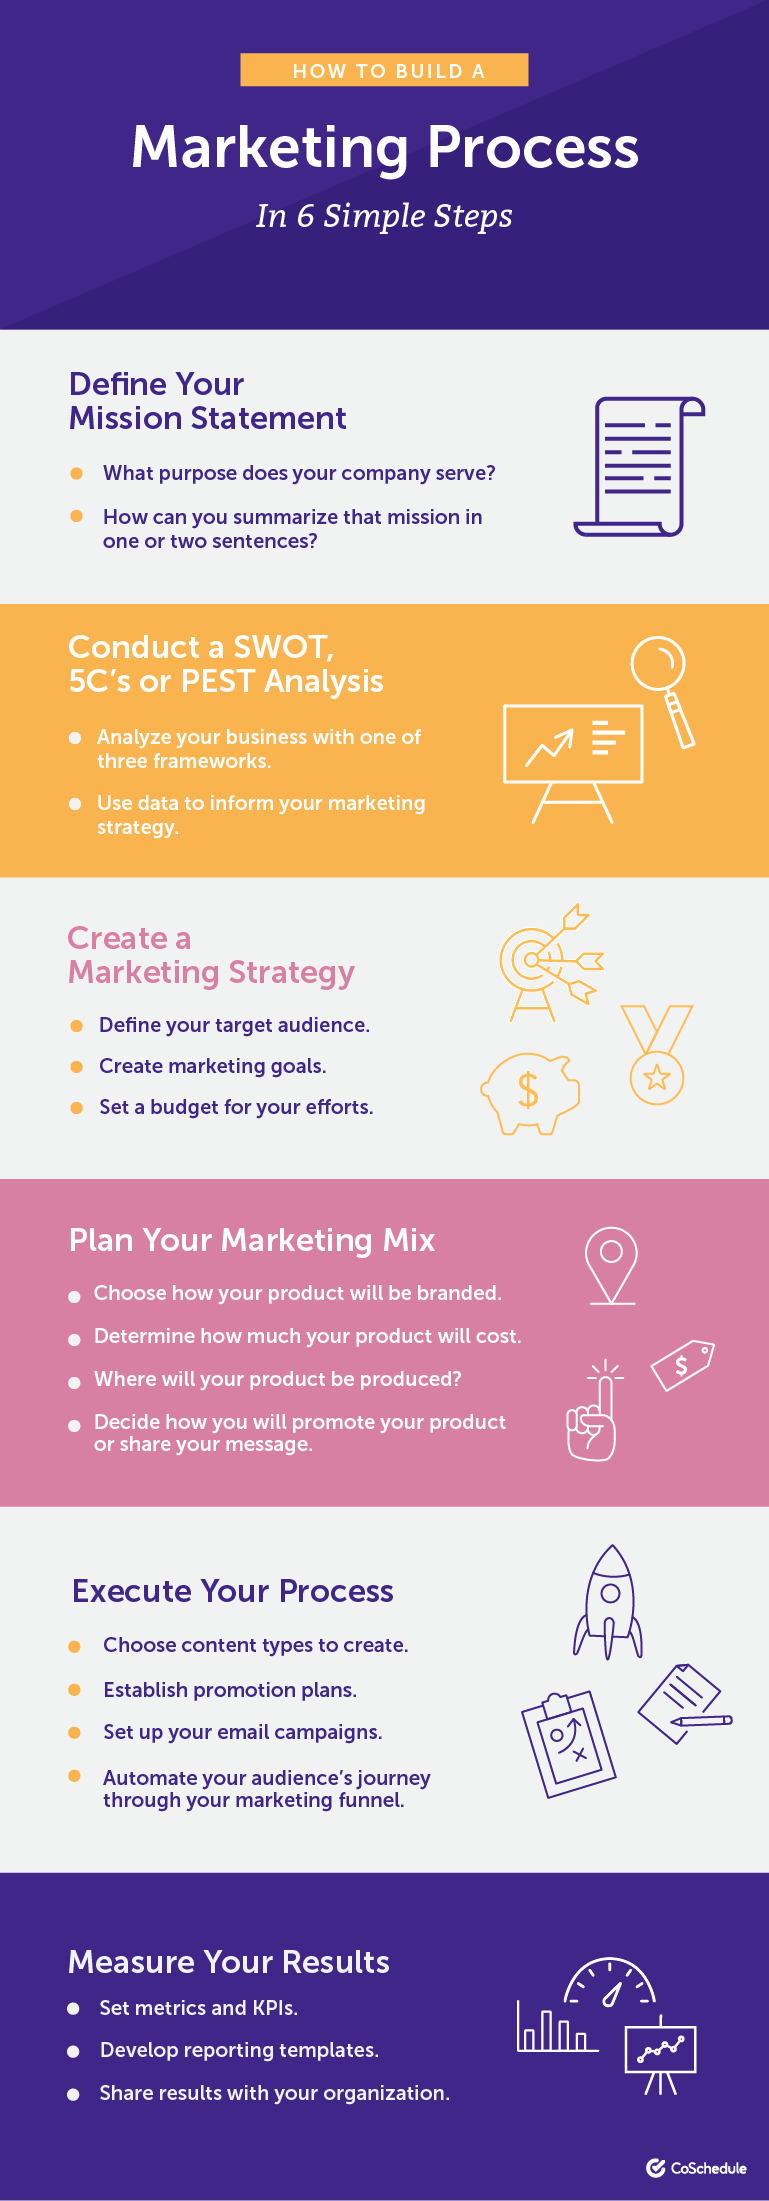 How the Marketing Process Works